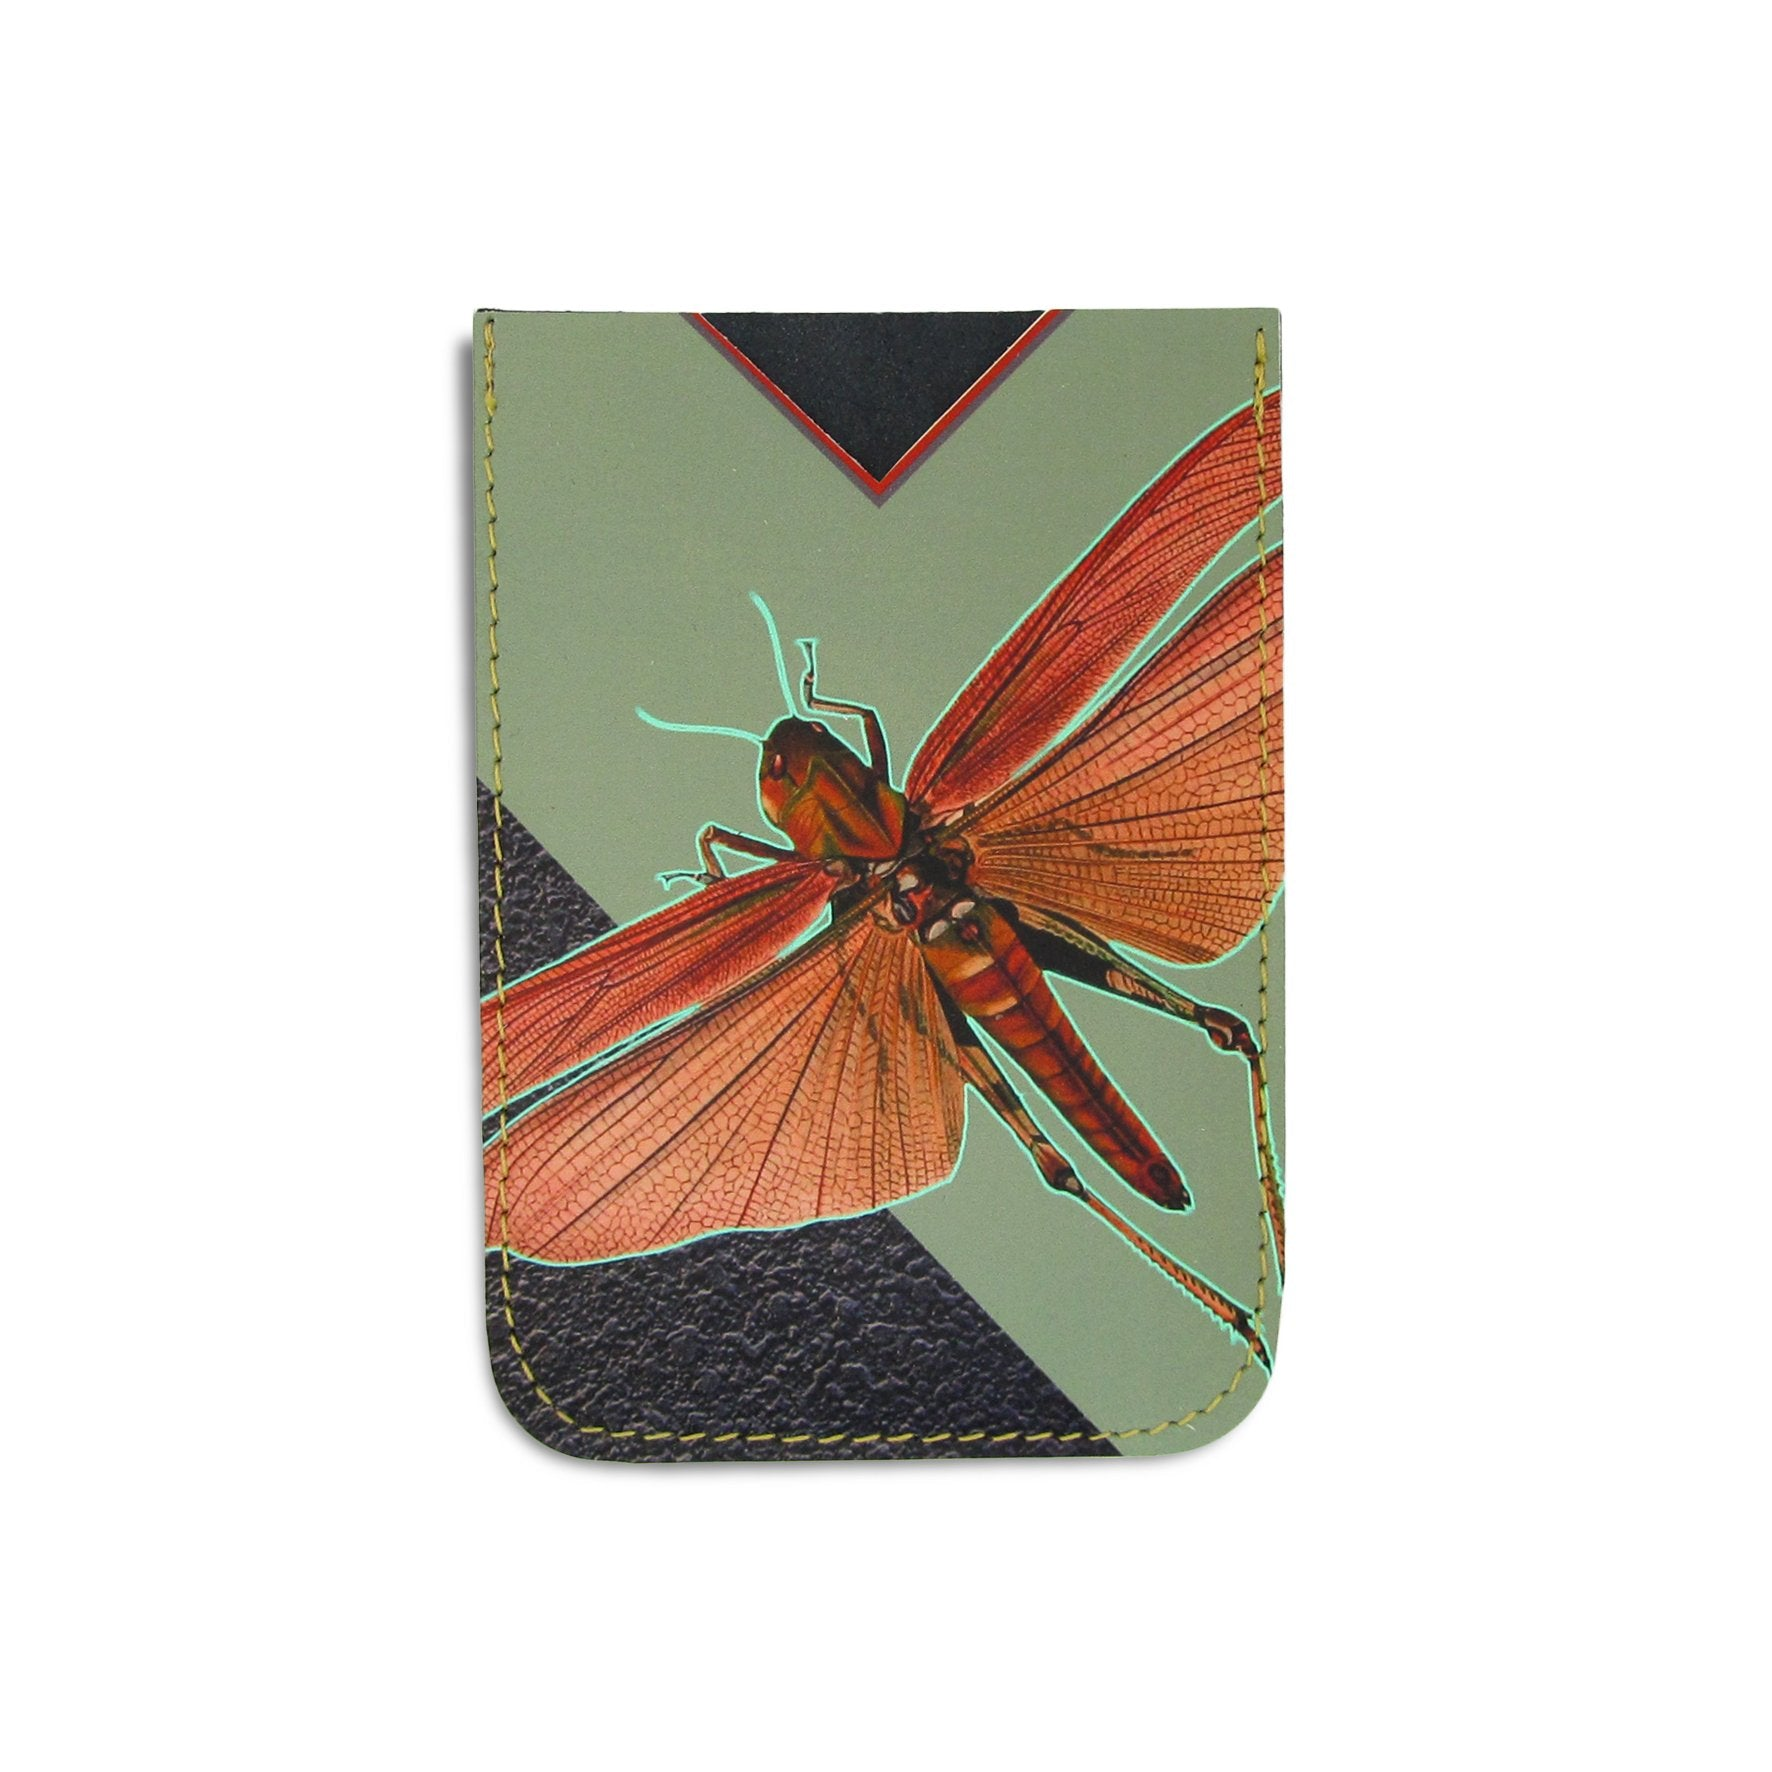 Leather Card Holder / Phone Sticker Wallet Pocket - Locust Wallet Tovi Sorga Standard Card Holder Without personalisation Green